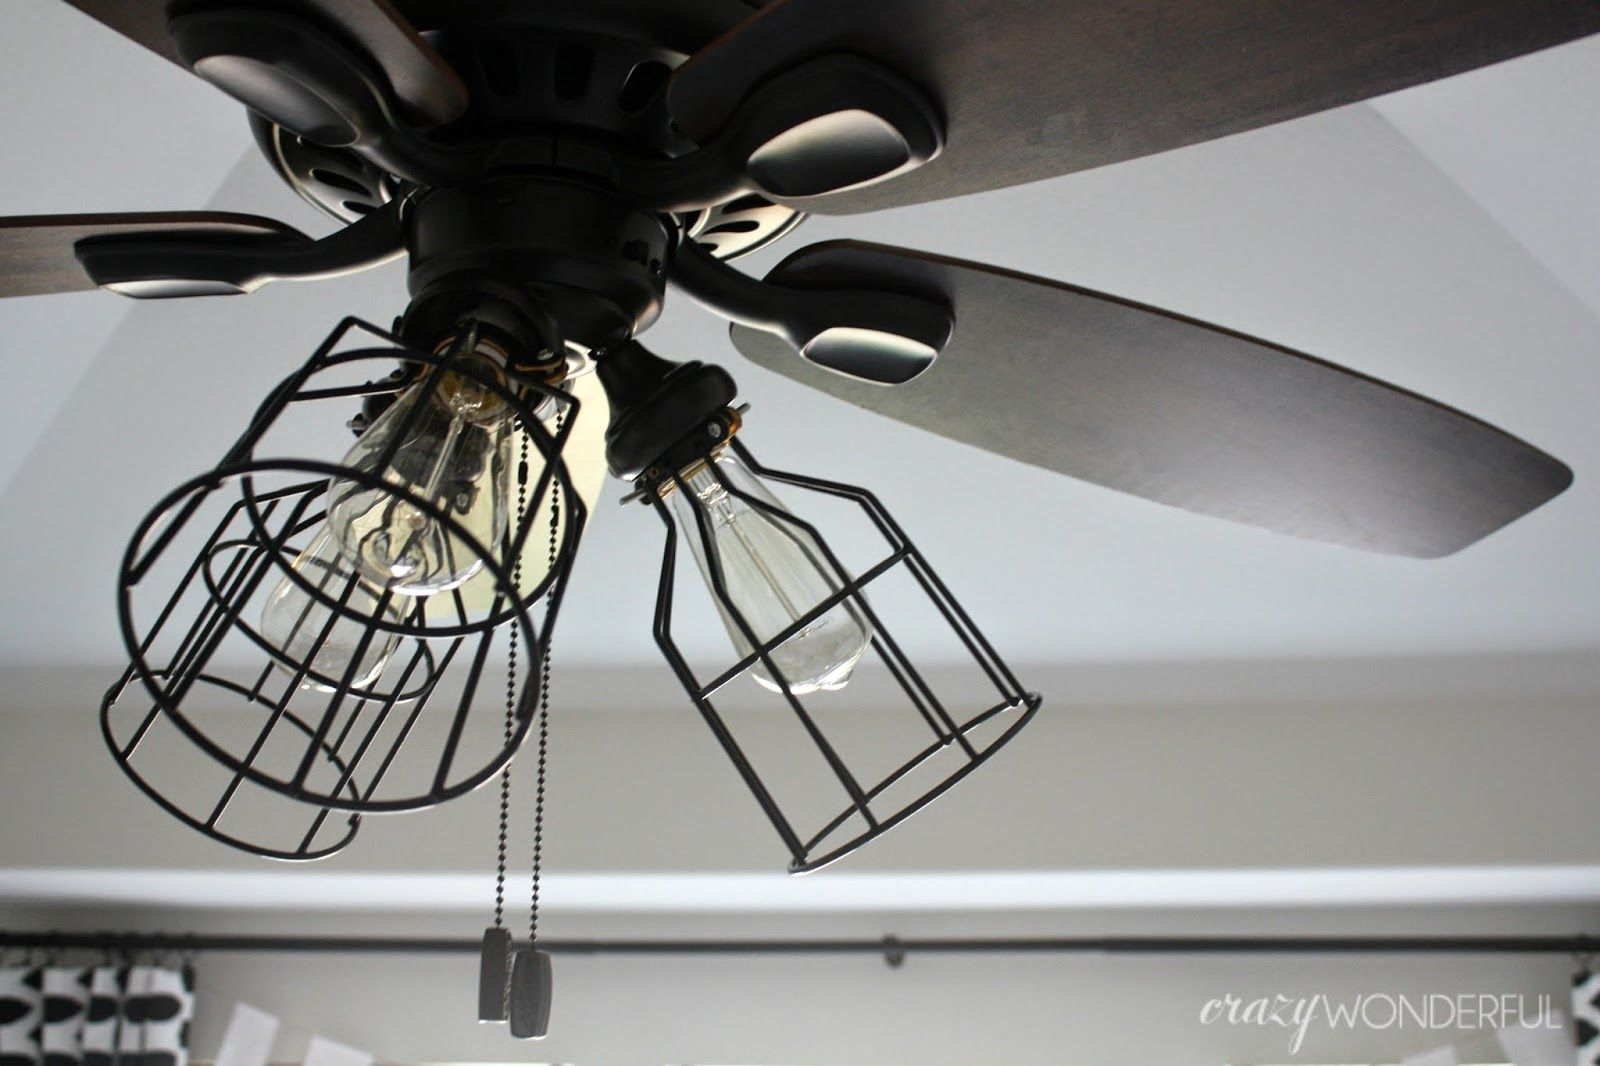 Crazy Wonderful Diy Cage Light Ceiling Fan Ceiling Fan Light Kit Ceiling Fan Light Cover